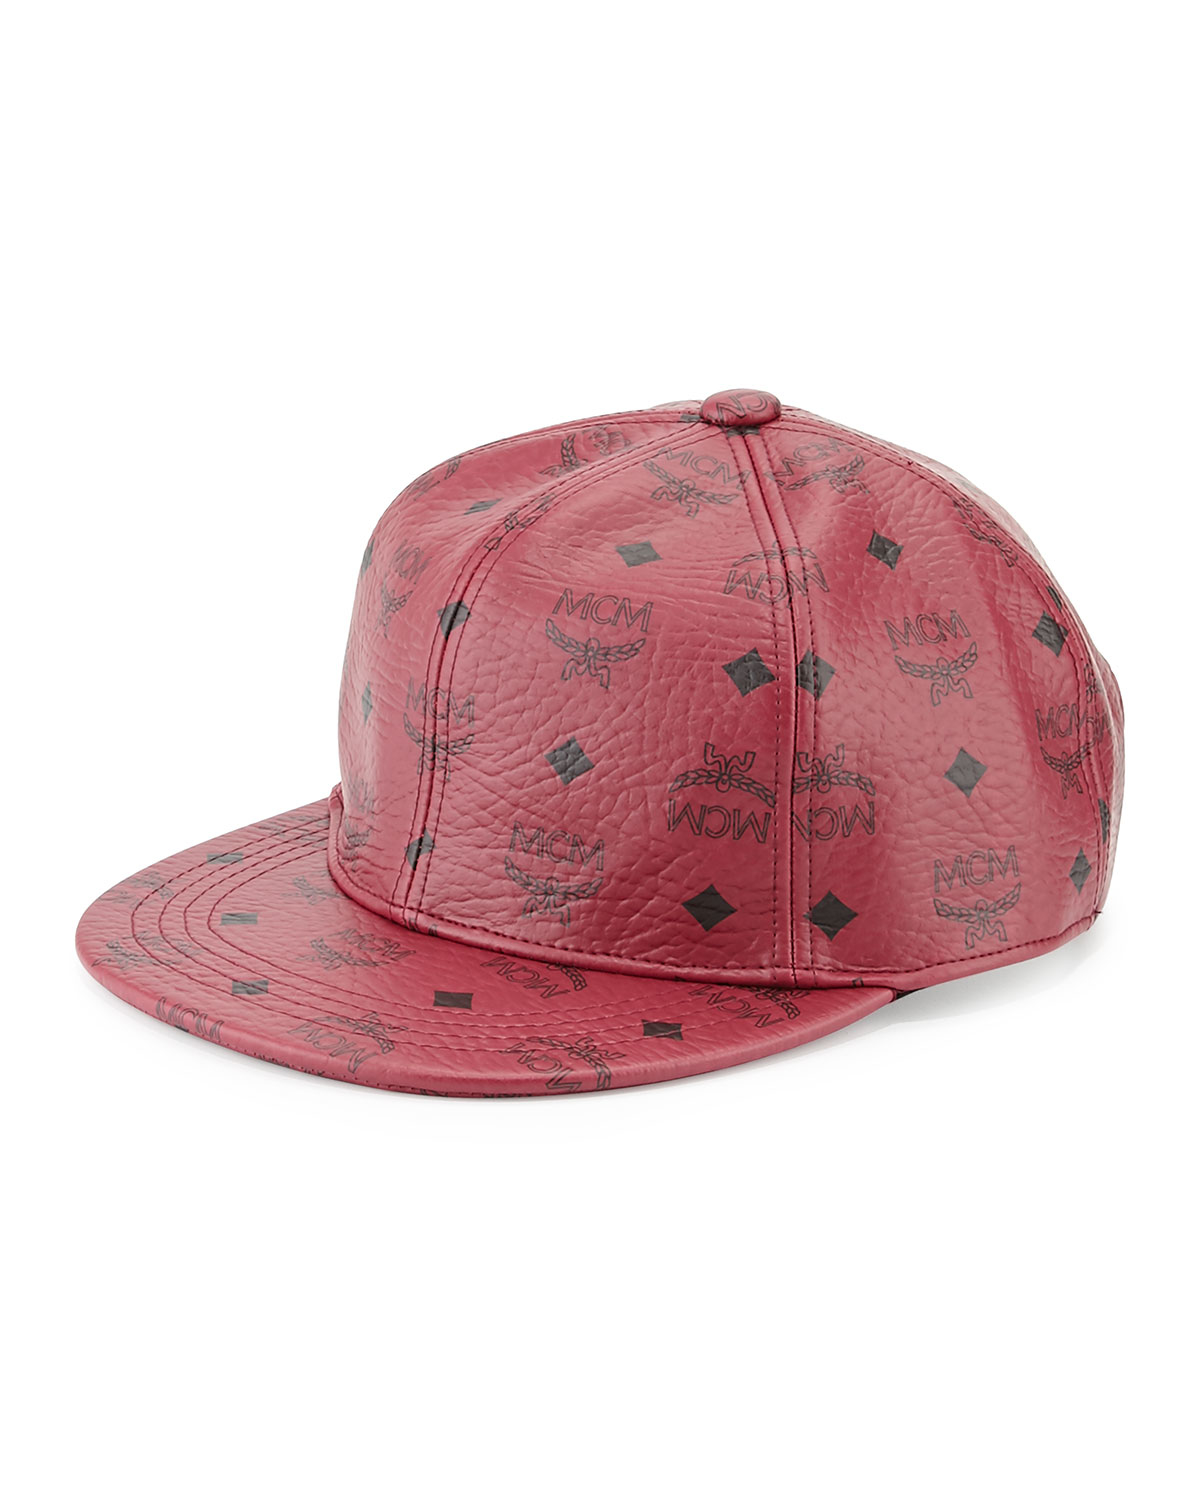 Mcm Logo Print Canvas Cap In Red For Men Lyst